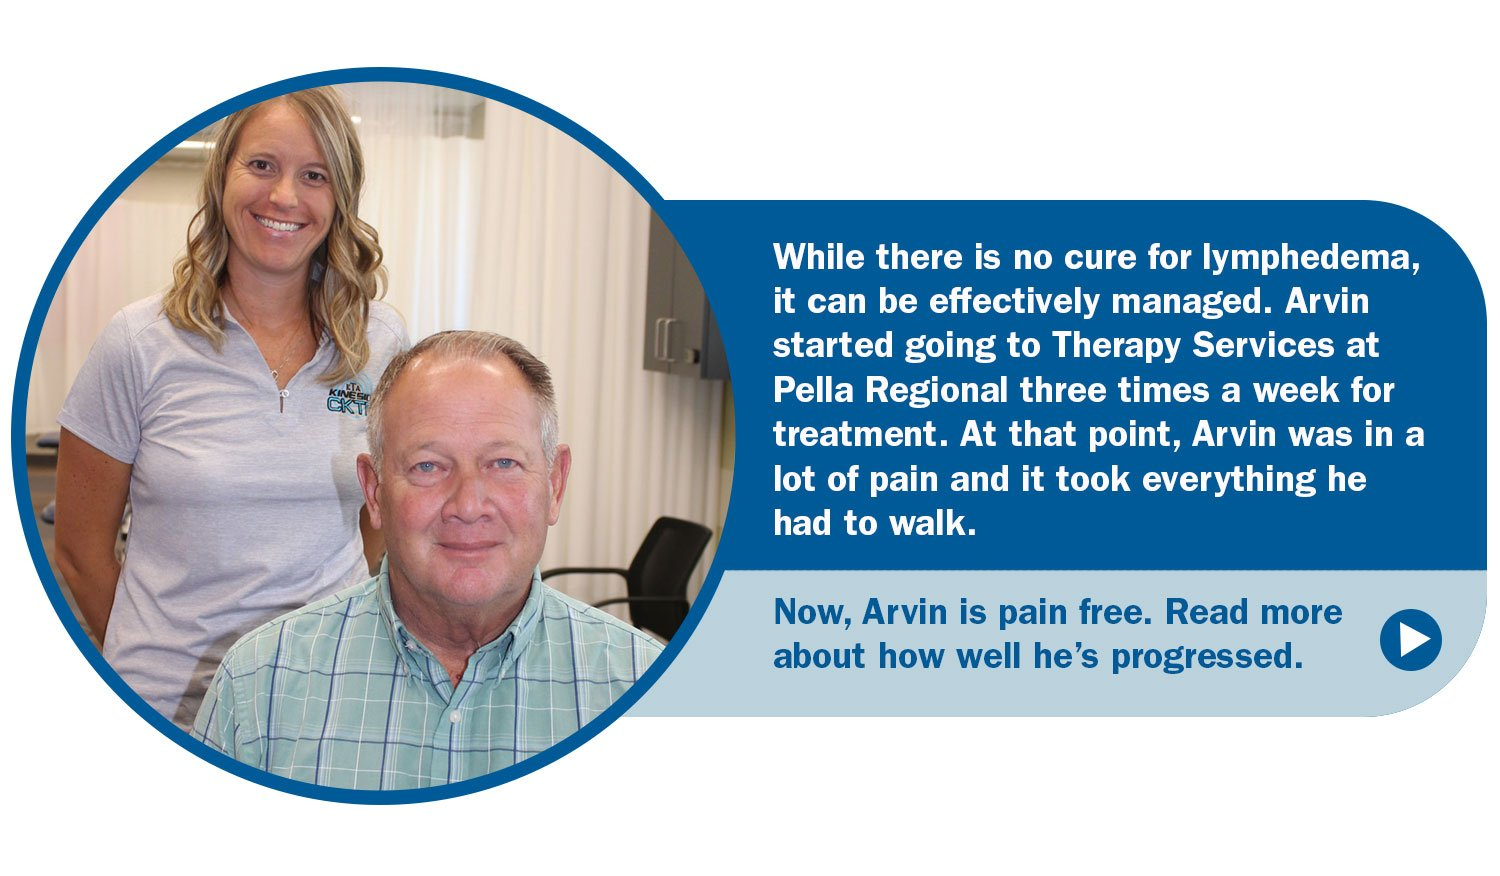 Read more about Arvin's Lymphedema Story